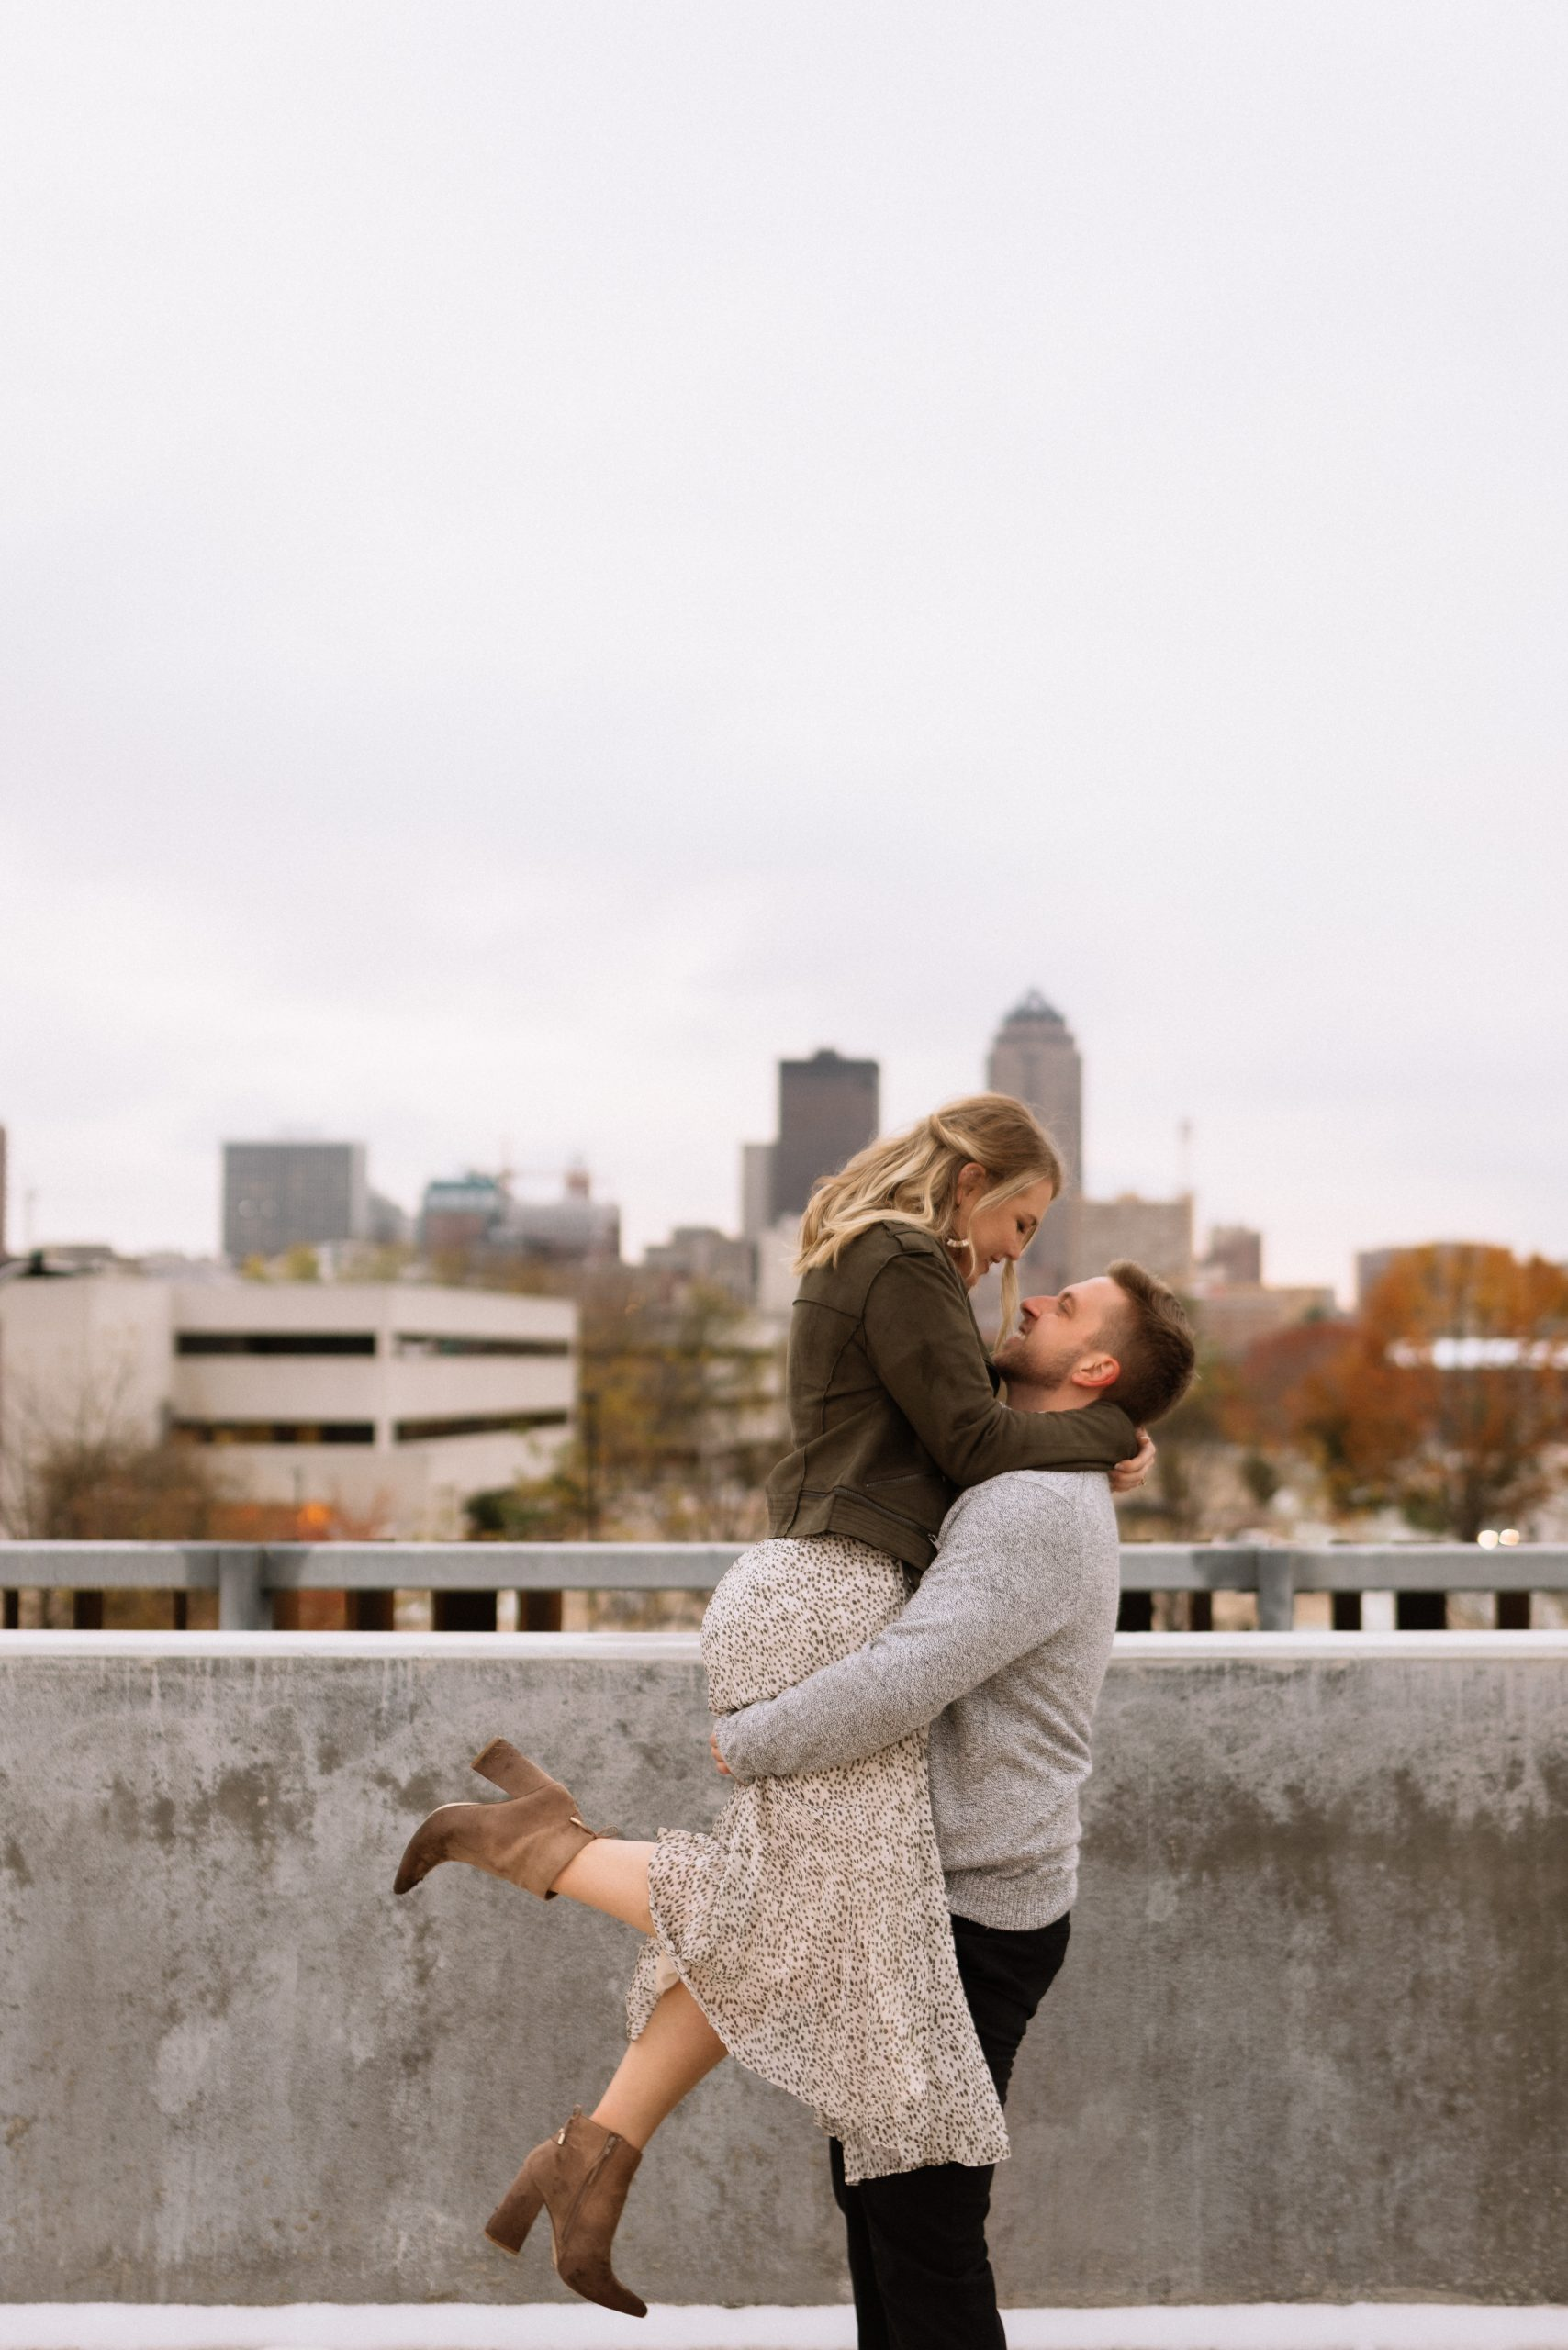 young couple engagement photoshoot in a parking lot with the city skyline in the background